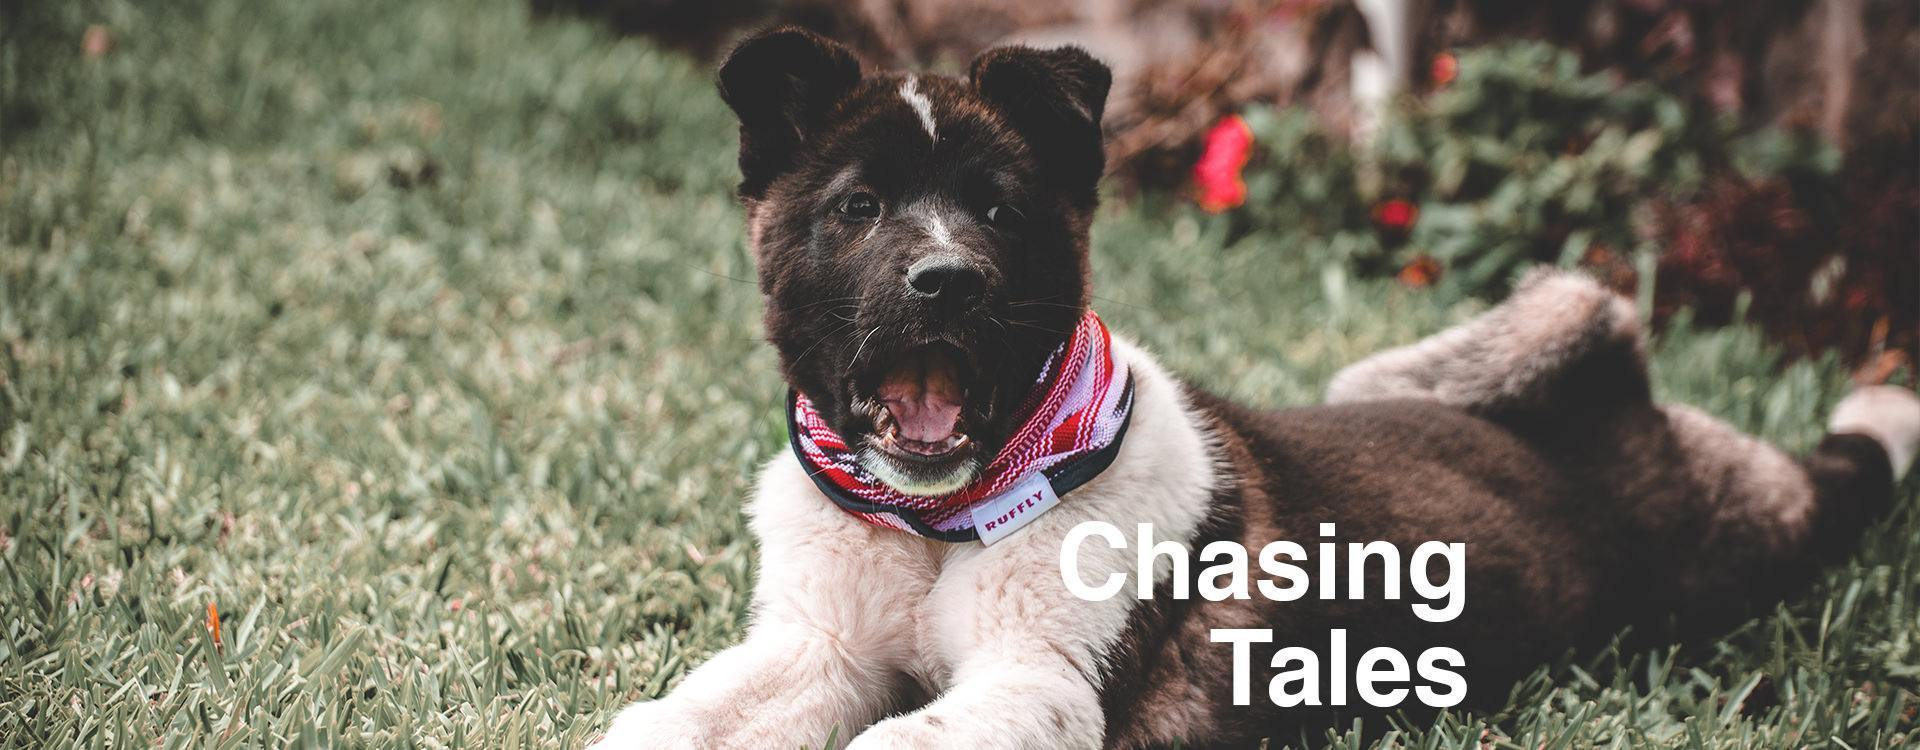 """Dog with black face and white and grey body lays on grass while yawning and overlaid text: """"Chasing Tales"""""""